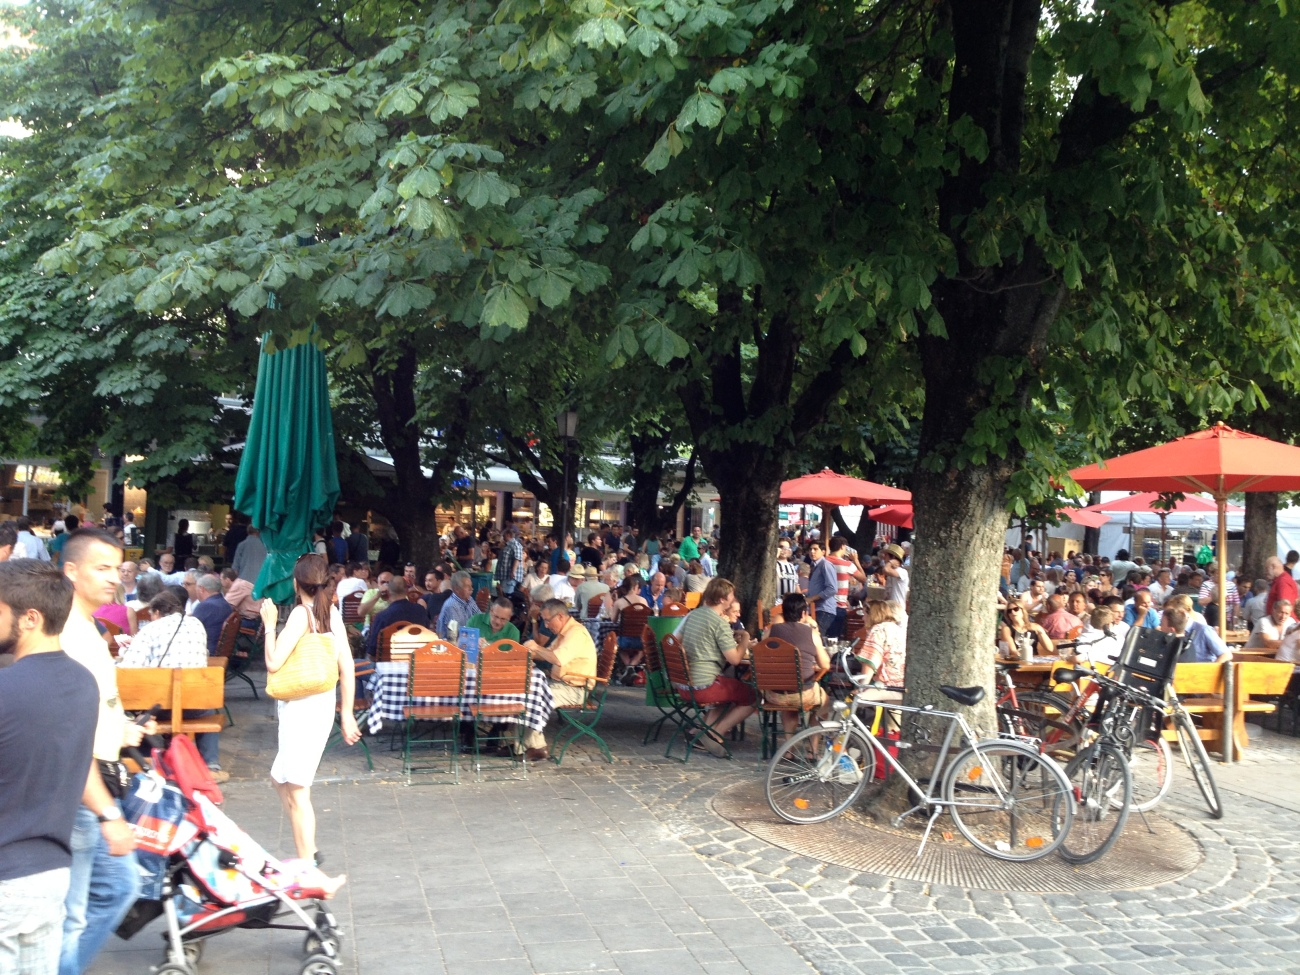 Viktualienmarkt's beer garden under the shady trees.